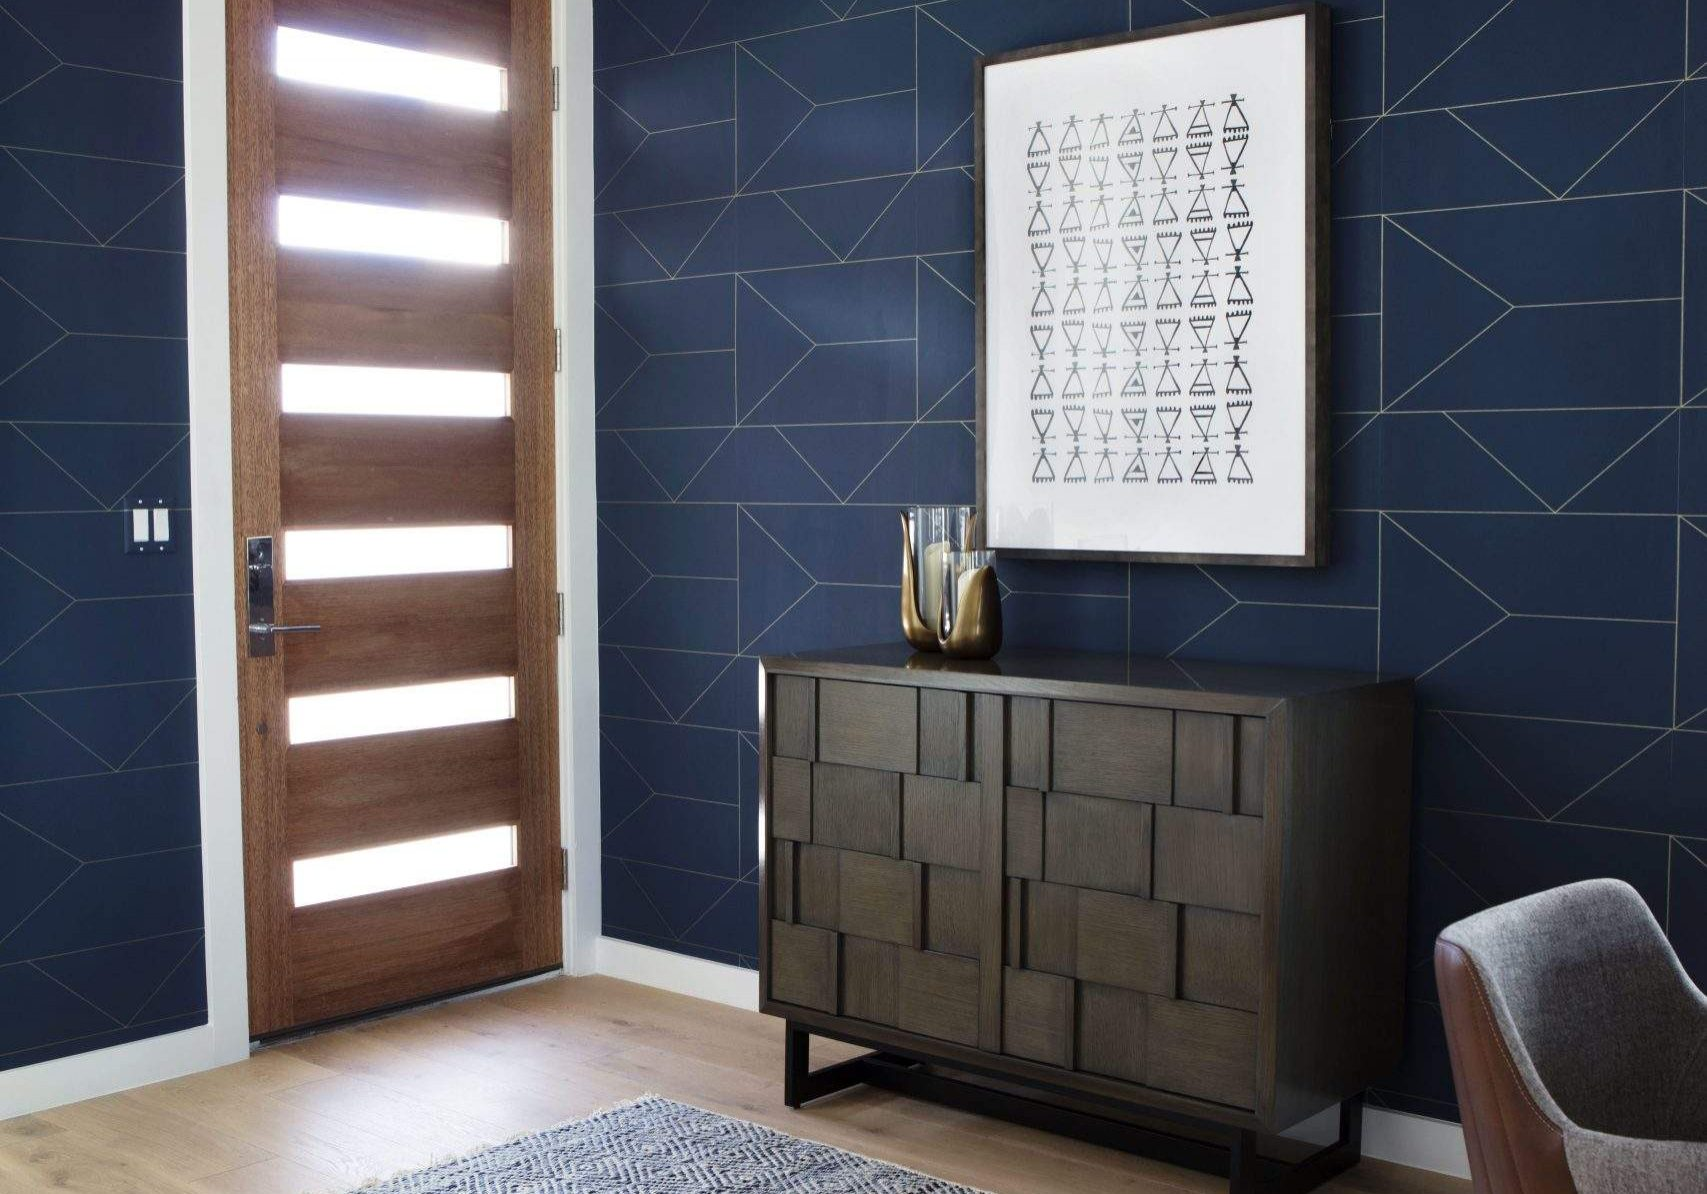 travis heights   cabinet and art work with blue geometric wallpaper near front door 1   austin, texas